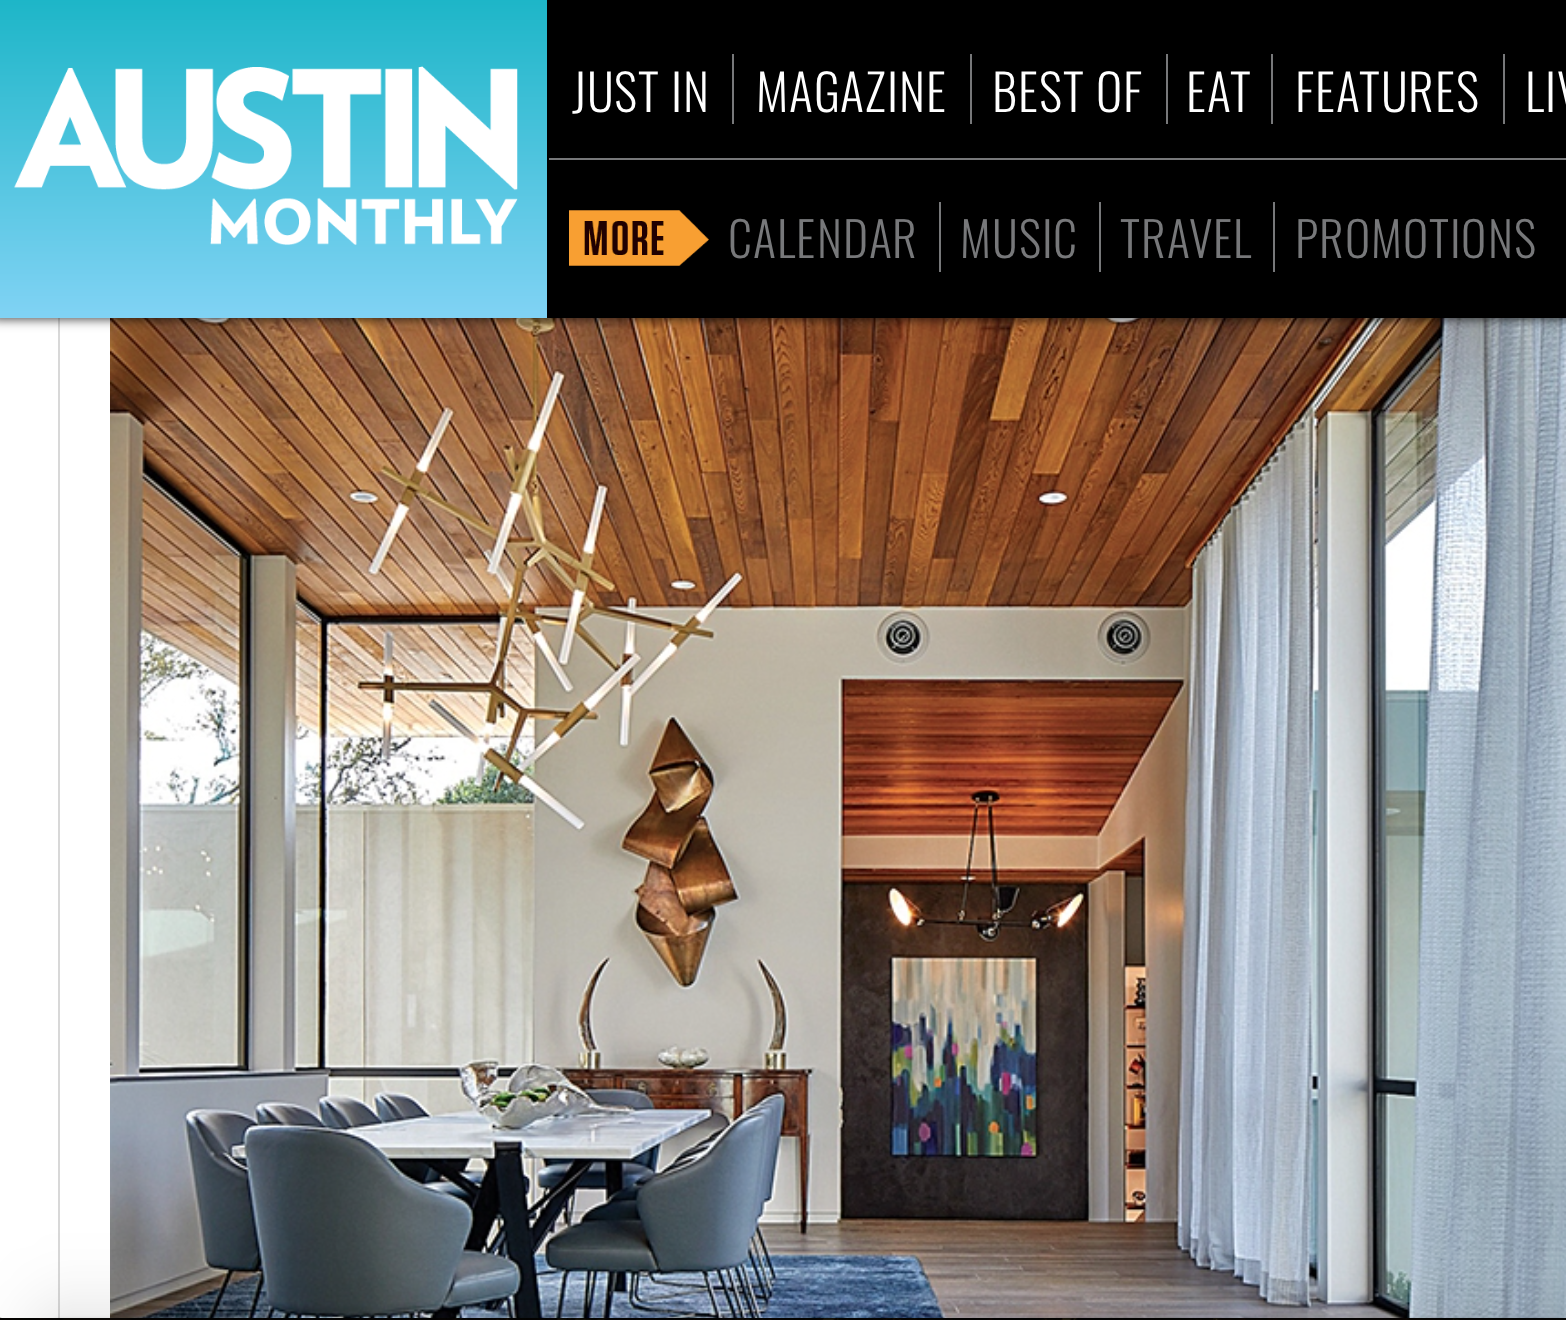 New Feature in Austin Monthly! - Interior design firm, Gingerwood Design, transformed this cool and contemporary home into a warm and inviting space. Mounted on a black concrete wall, this commissioned piece greets guests as they enter this beautiful Austin home, (pictured left). Read the article here!